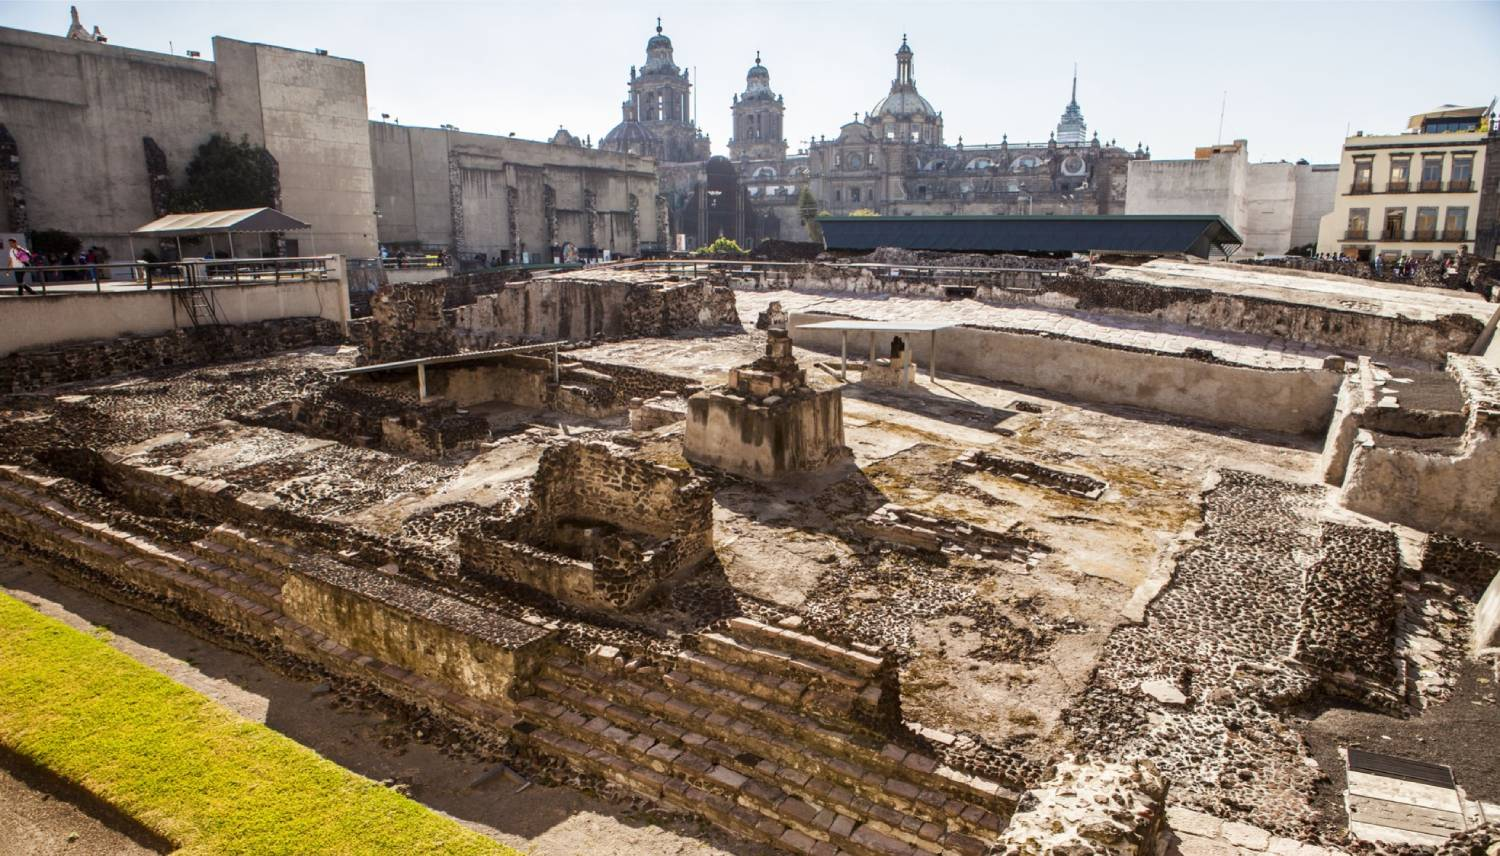 Mexico City Great Temple (Templo Mayor) - Things To Do In Mexico City